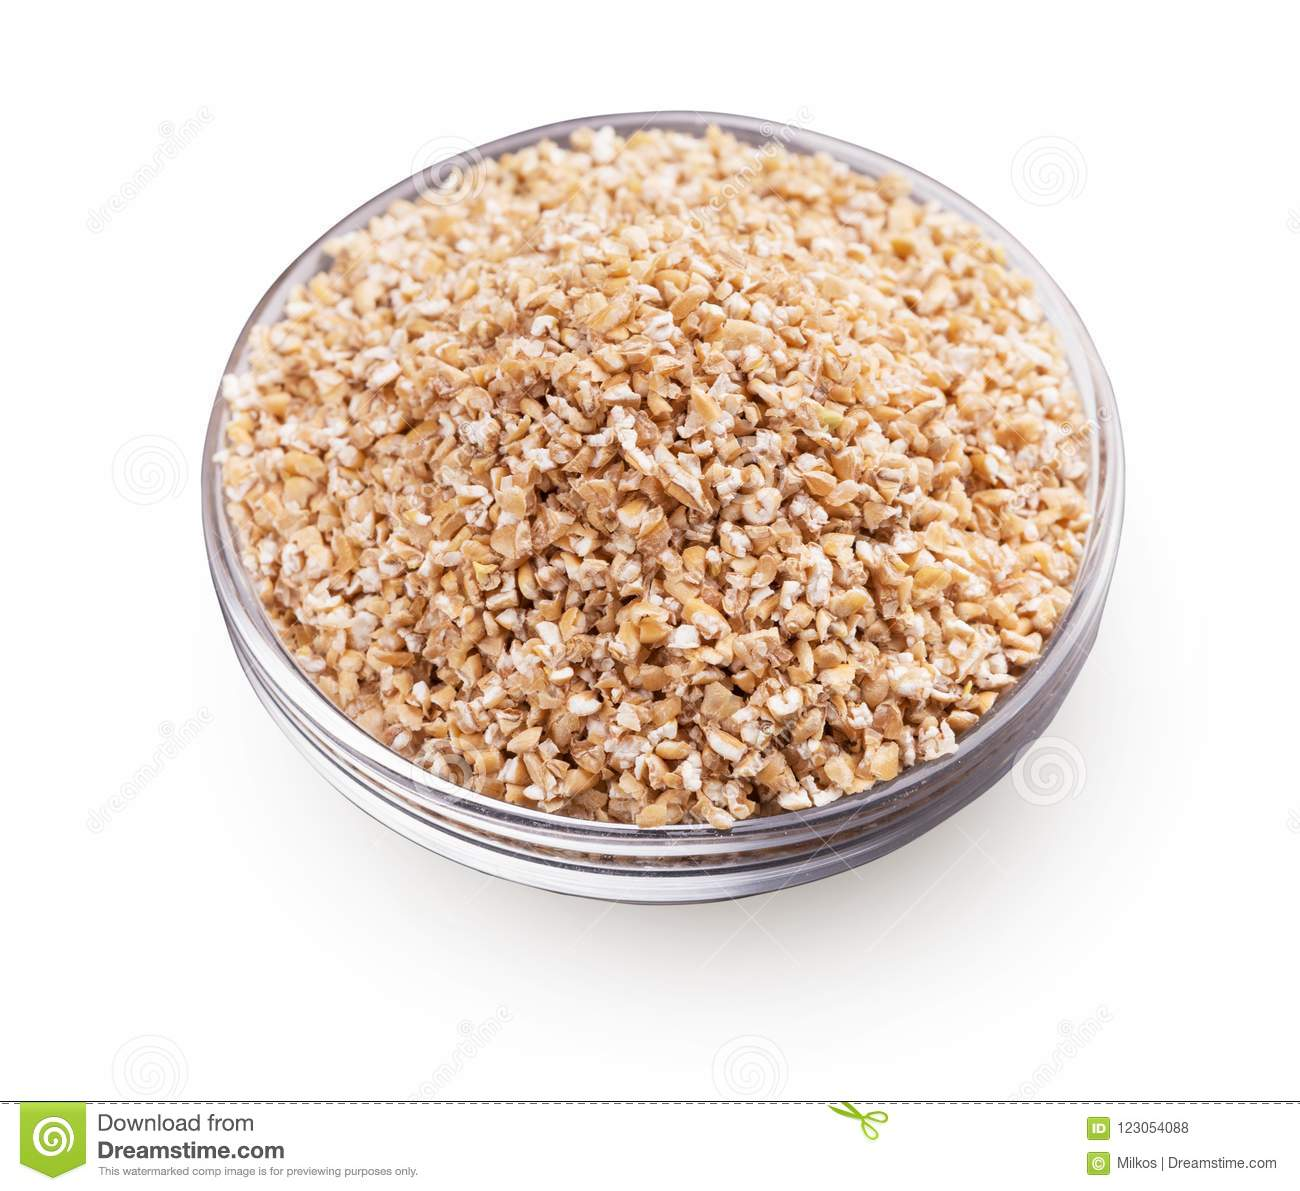 Barley grits. What kind of grain do you get from dietary products